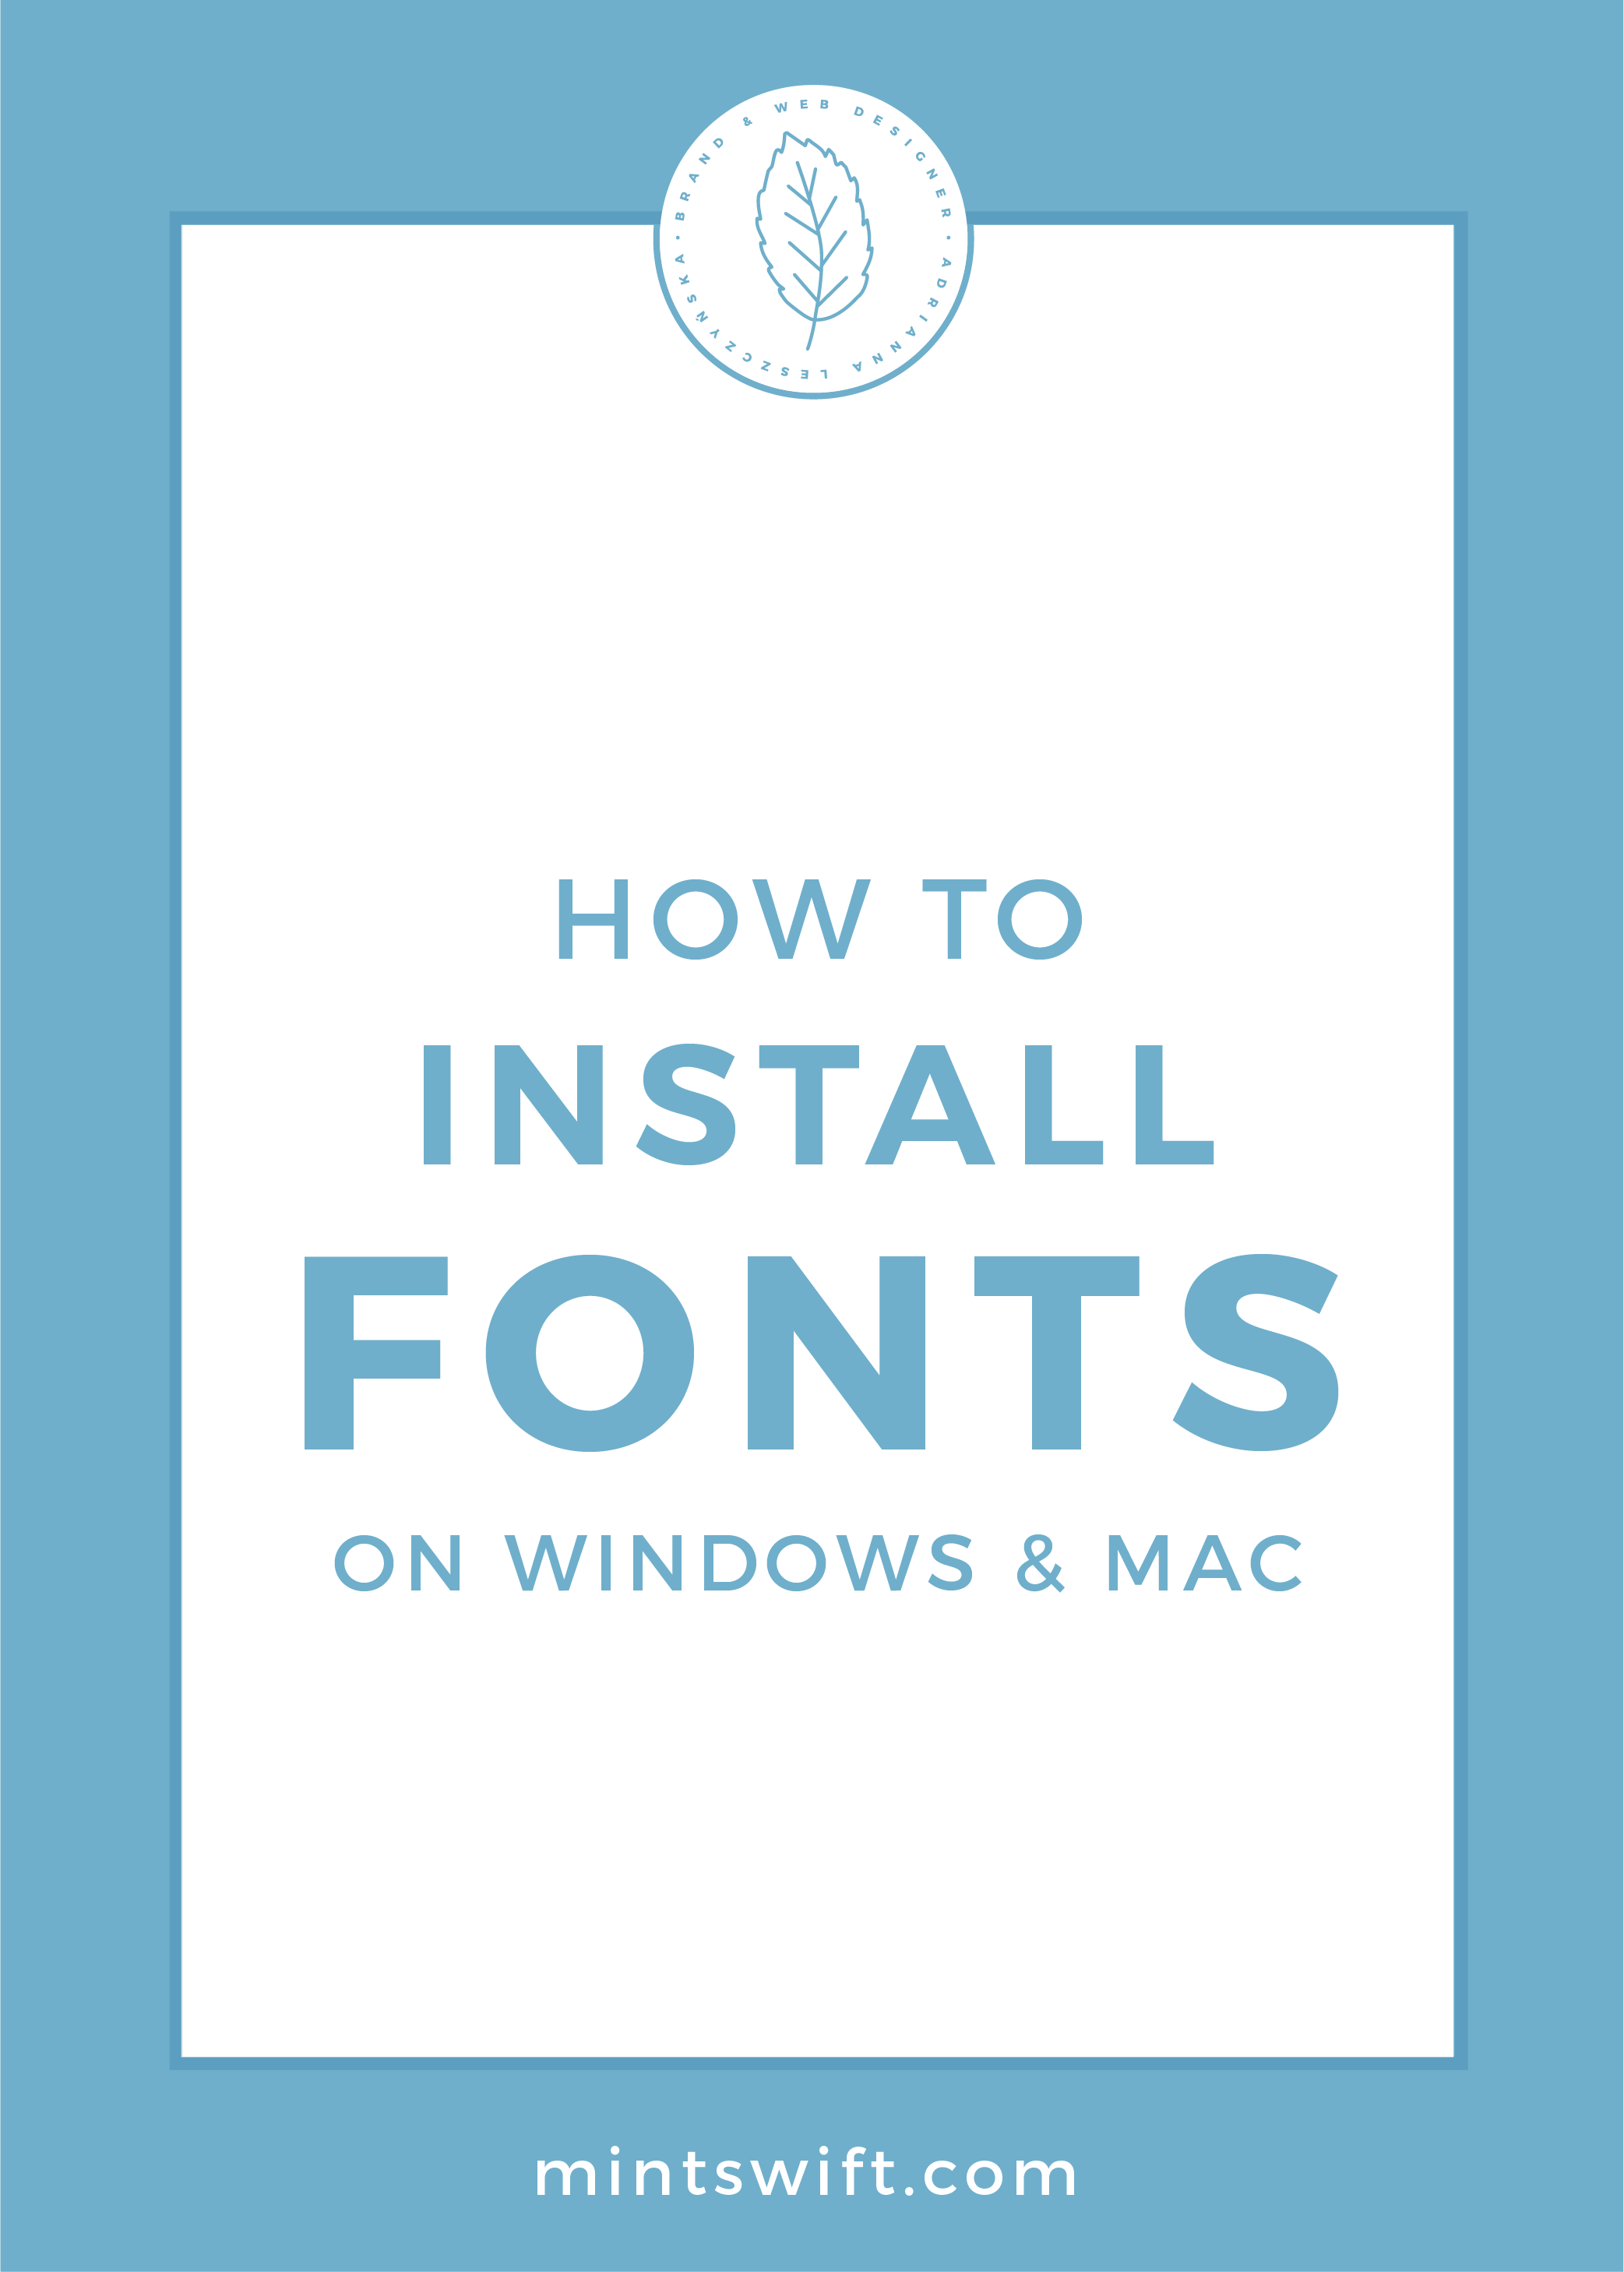 How to Install Fonts on Windows & Mac by MintSwift